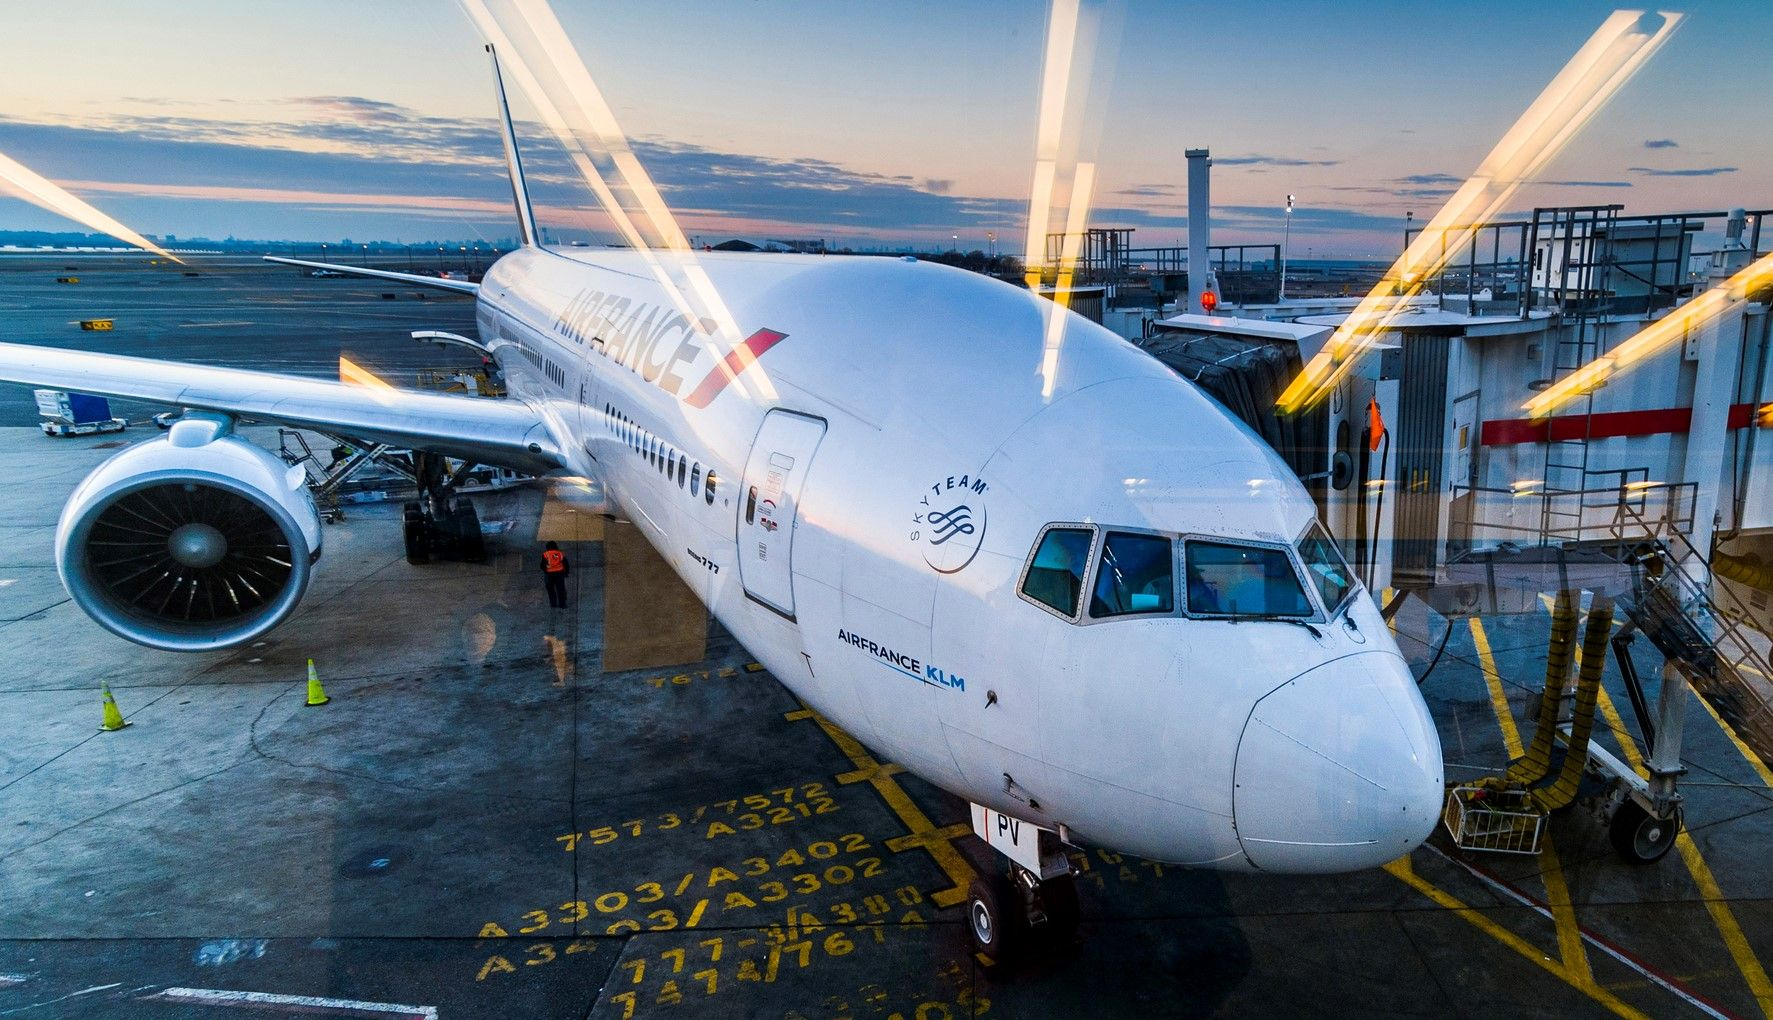 Book Air France Airlines Online Ticket easily and at